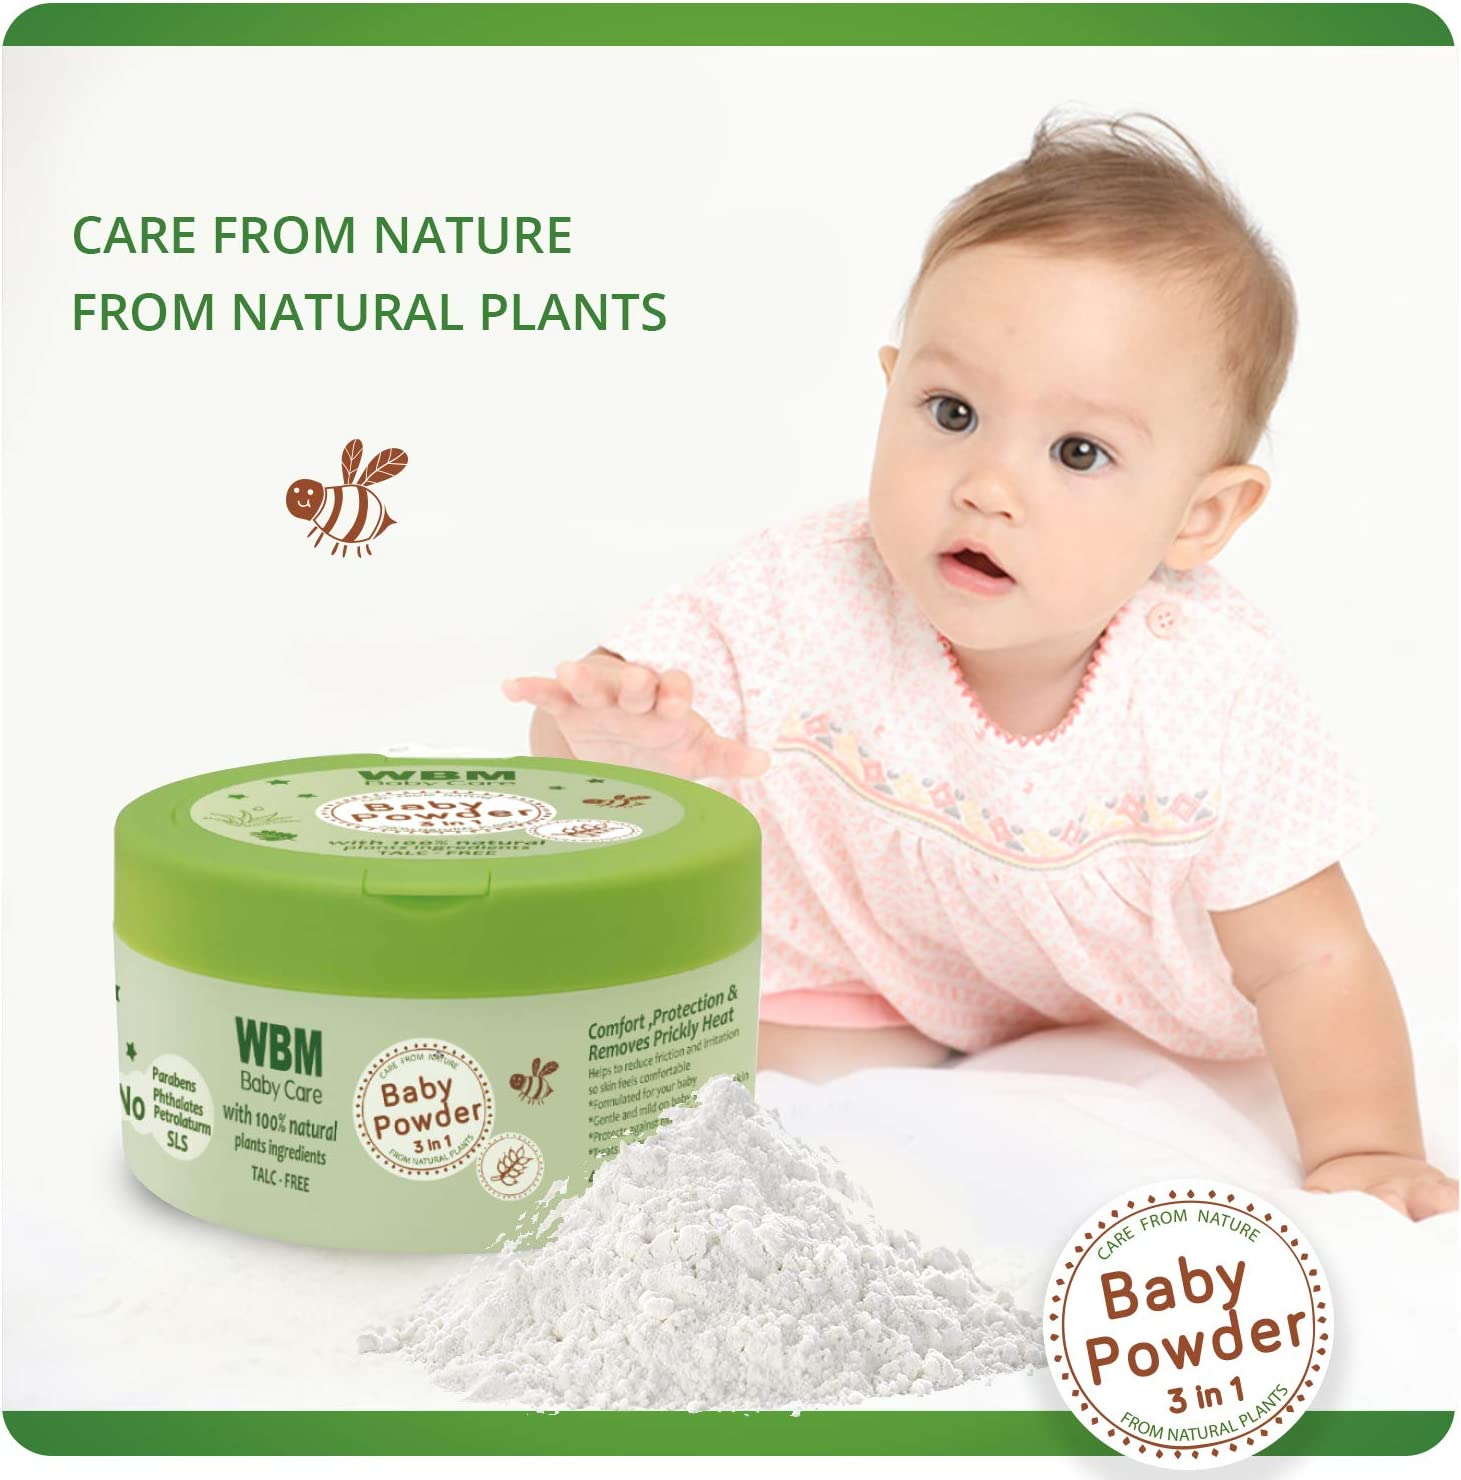 WBM Care Baby-GF02 Bathtime Solutions, 5 Items, Gift Set to Nourish Skin for Baby